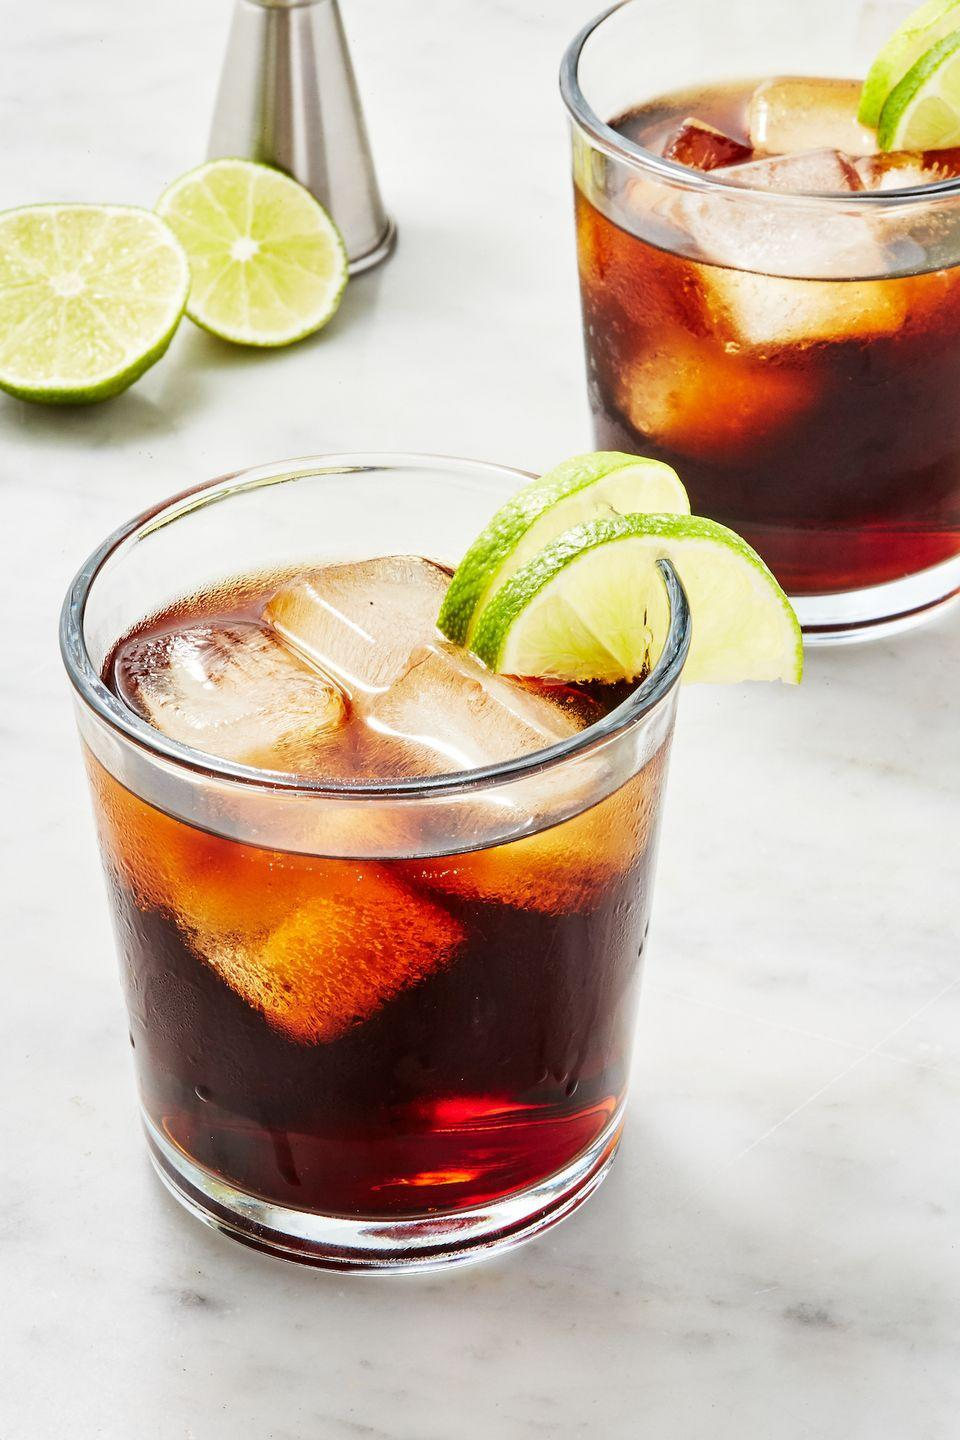 """<p>As the name suggests, this drink couldn't be simpler.</p><p>Get the recipe from <a href=""""https://www.delish.com/cooking/recipe-ideas/a28903015/rum-and-coke-recipe/"""" rel=""""nofollow noopener"""" target=""""_blank"""" data-ylk=""""slk:Delish"""" class=""""link rapid-noclick-resp"""">Delish</a>.</p>"""